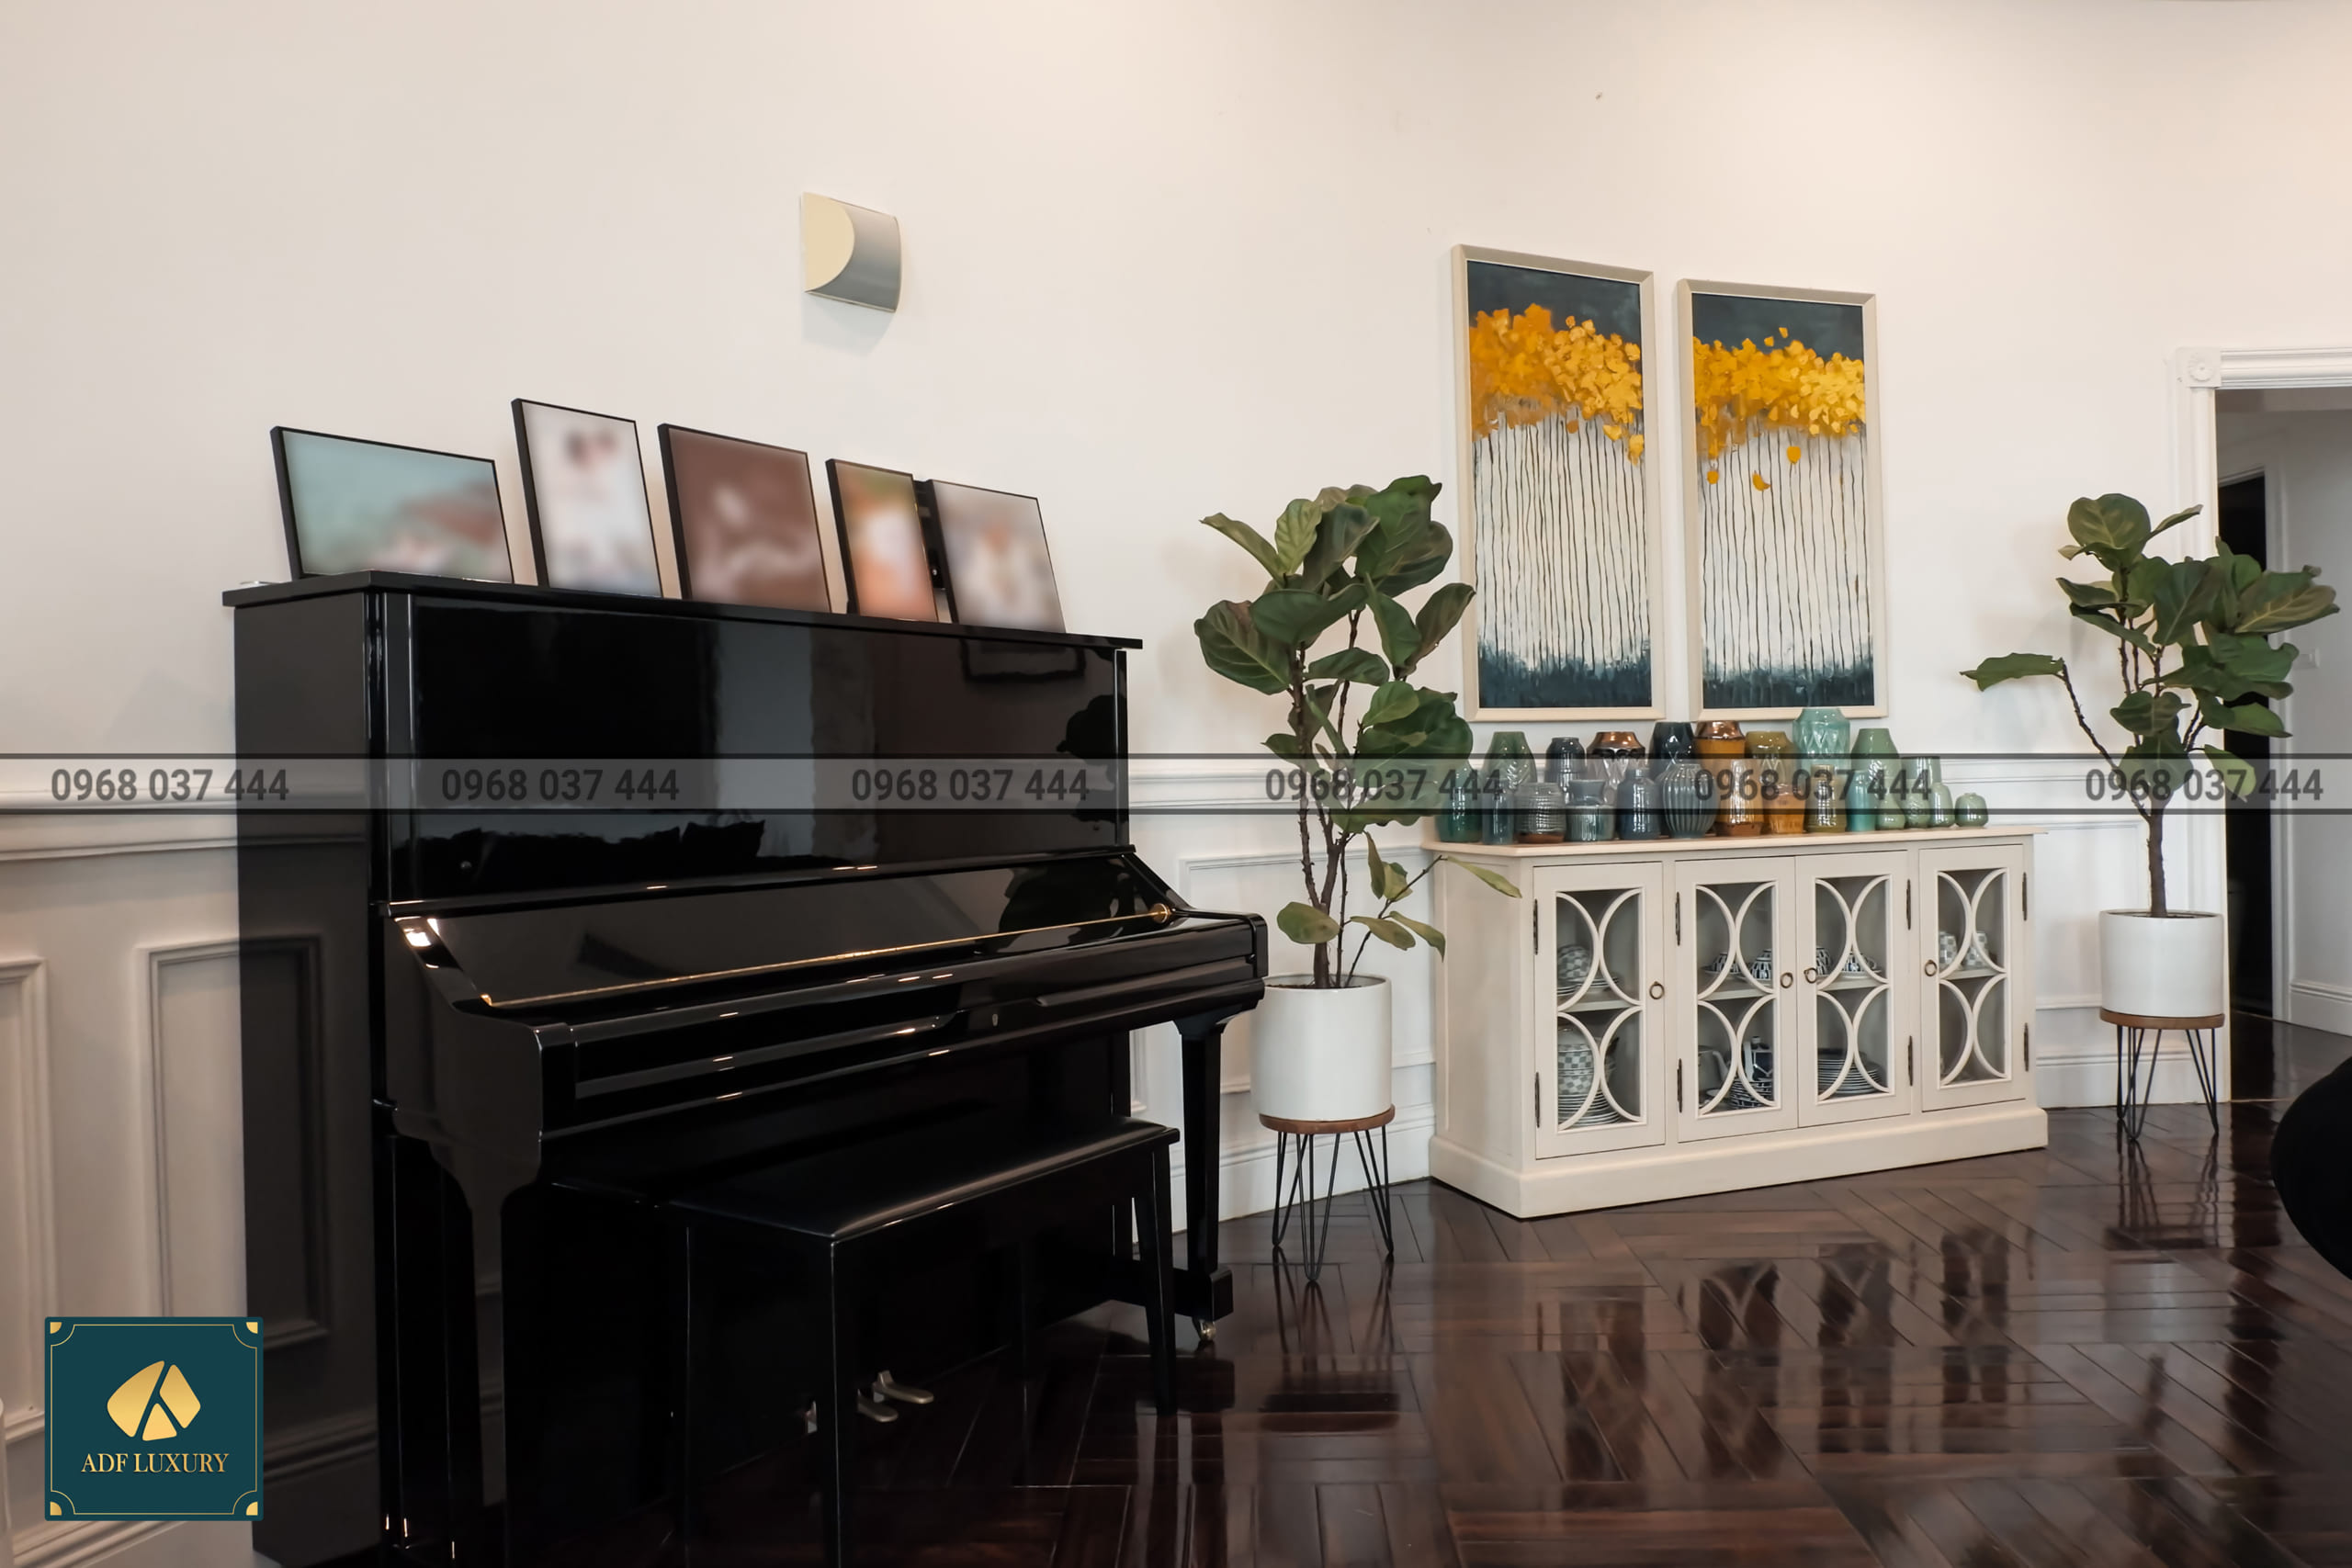 hoan-thien-noi-that-can-ho-330m2-o-the-manor-me-tri